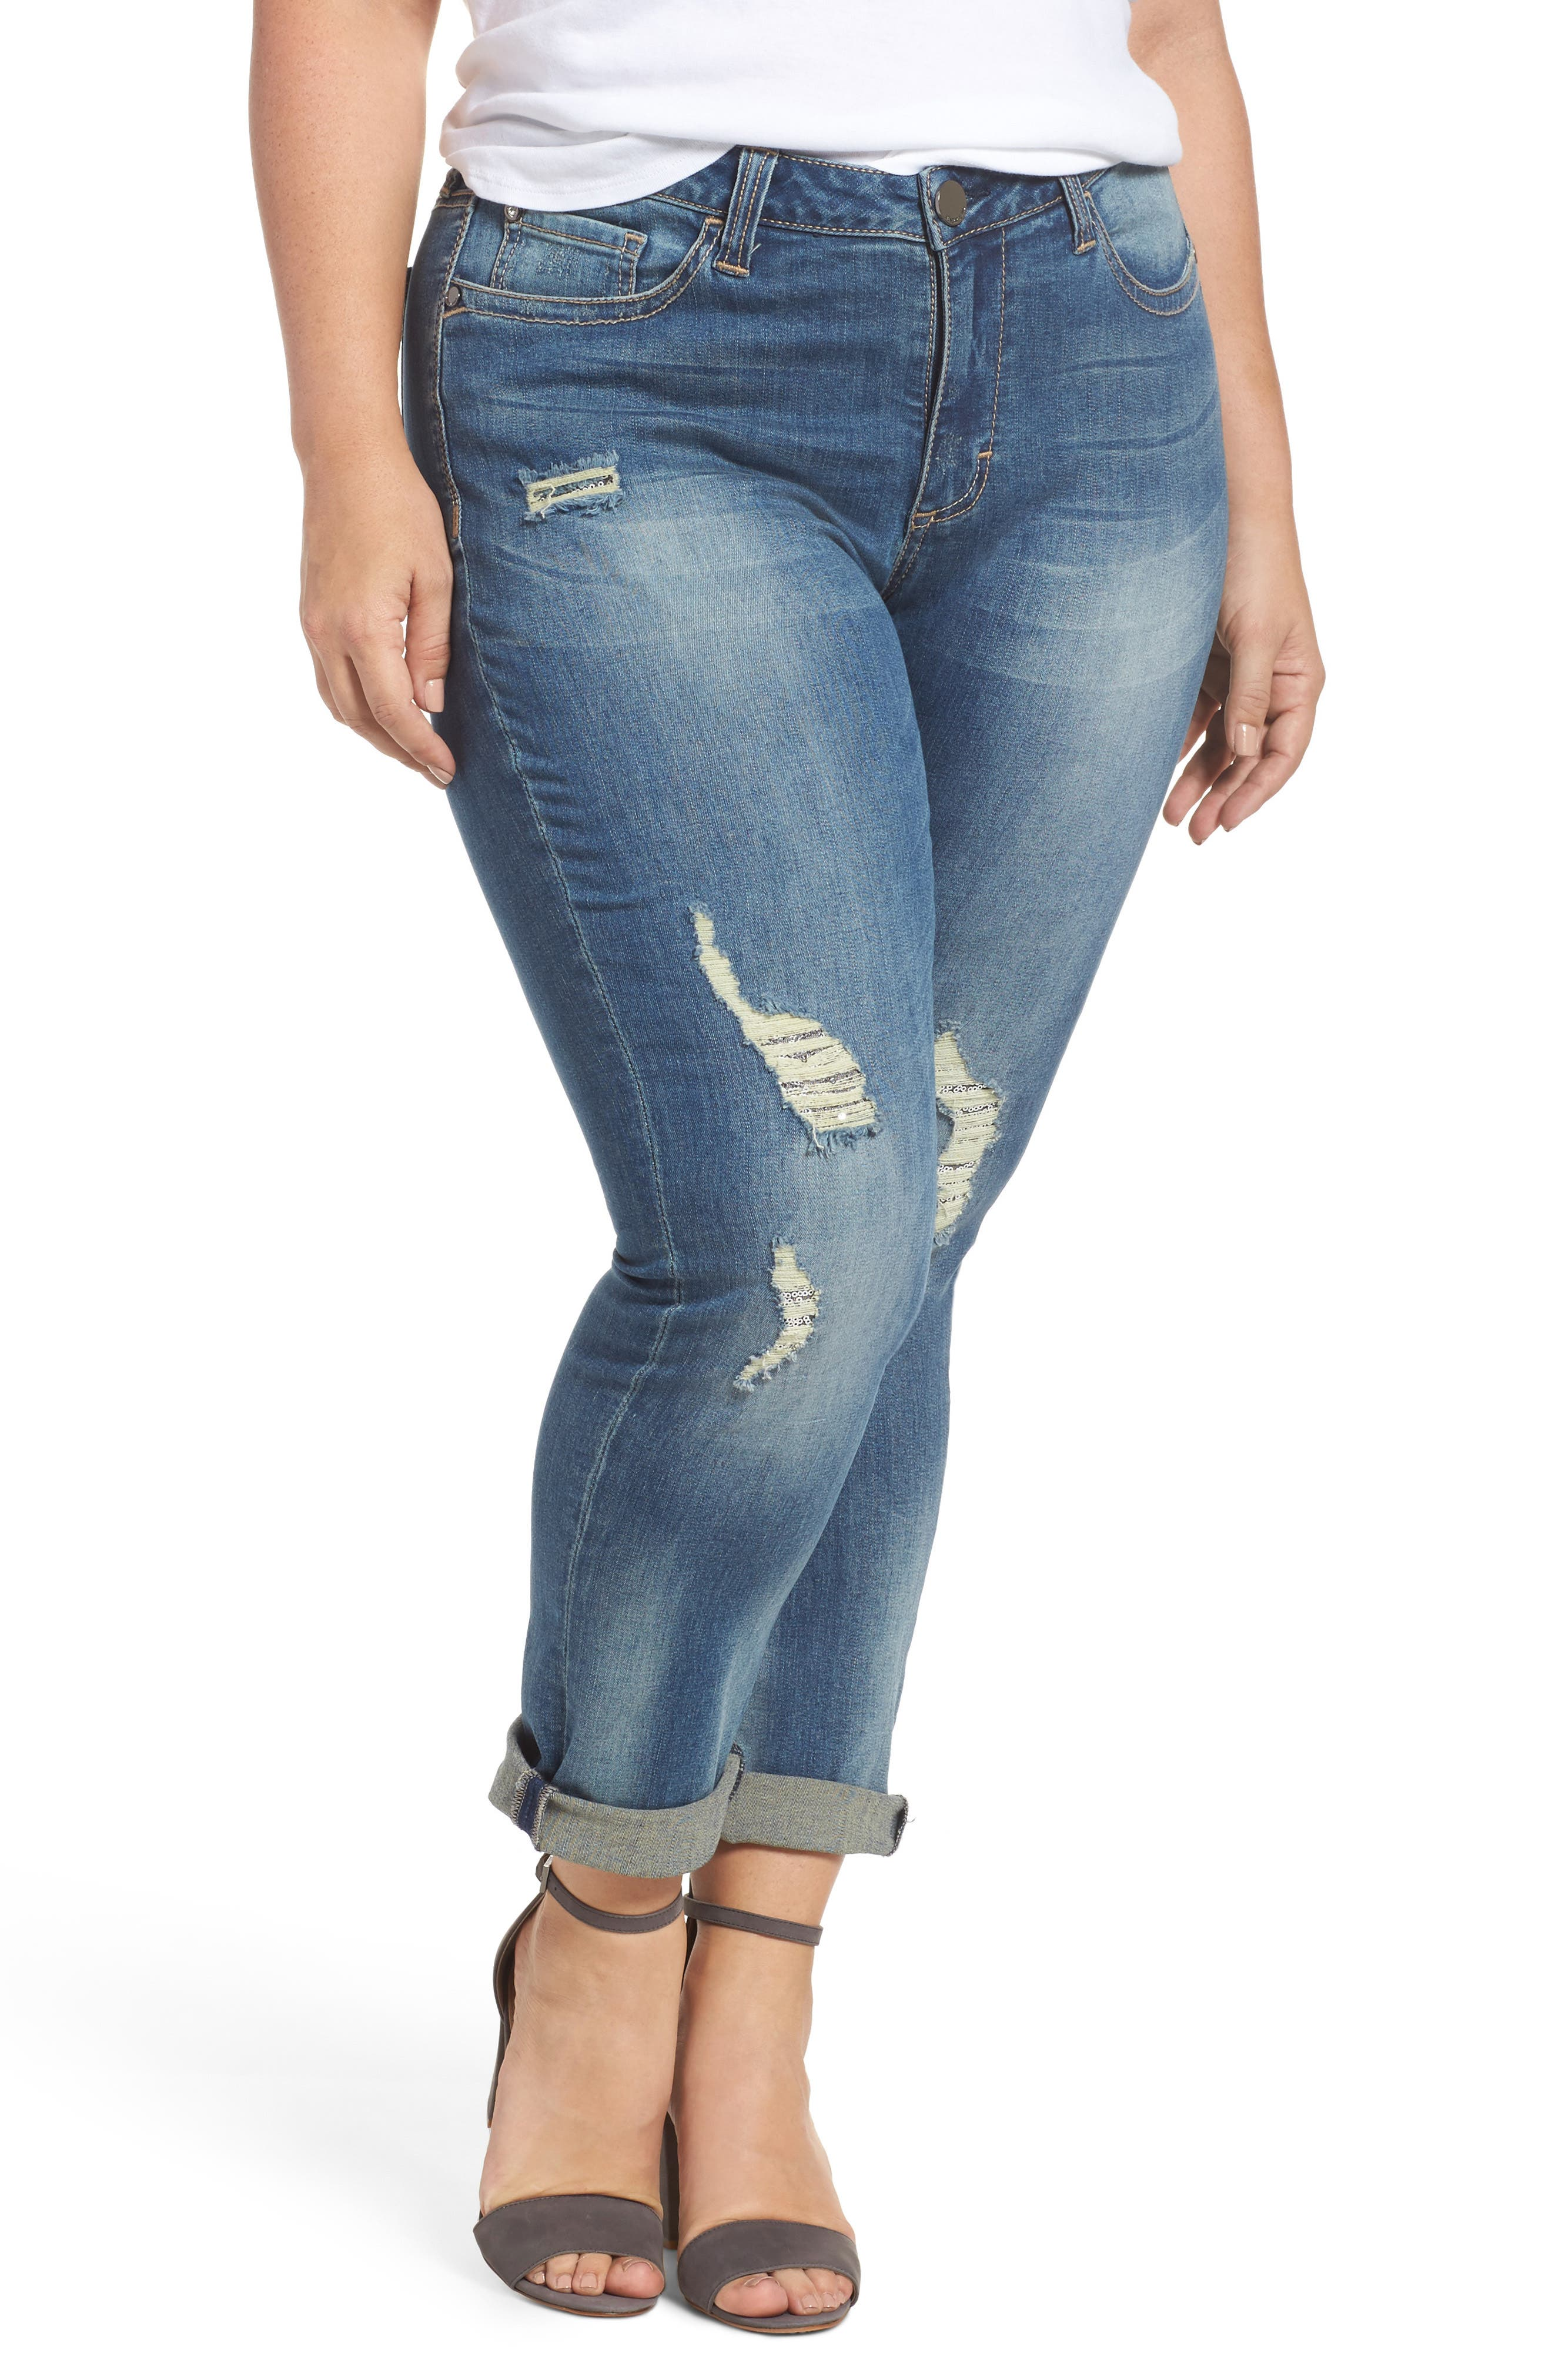 Main Image - Seven7 Ripped & Embellished Skinny Jeans (Banks) (Plus Size)